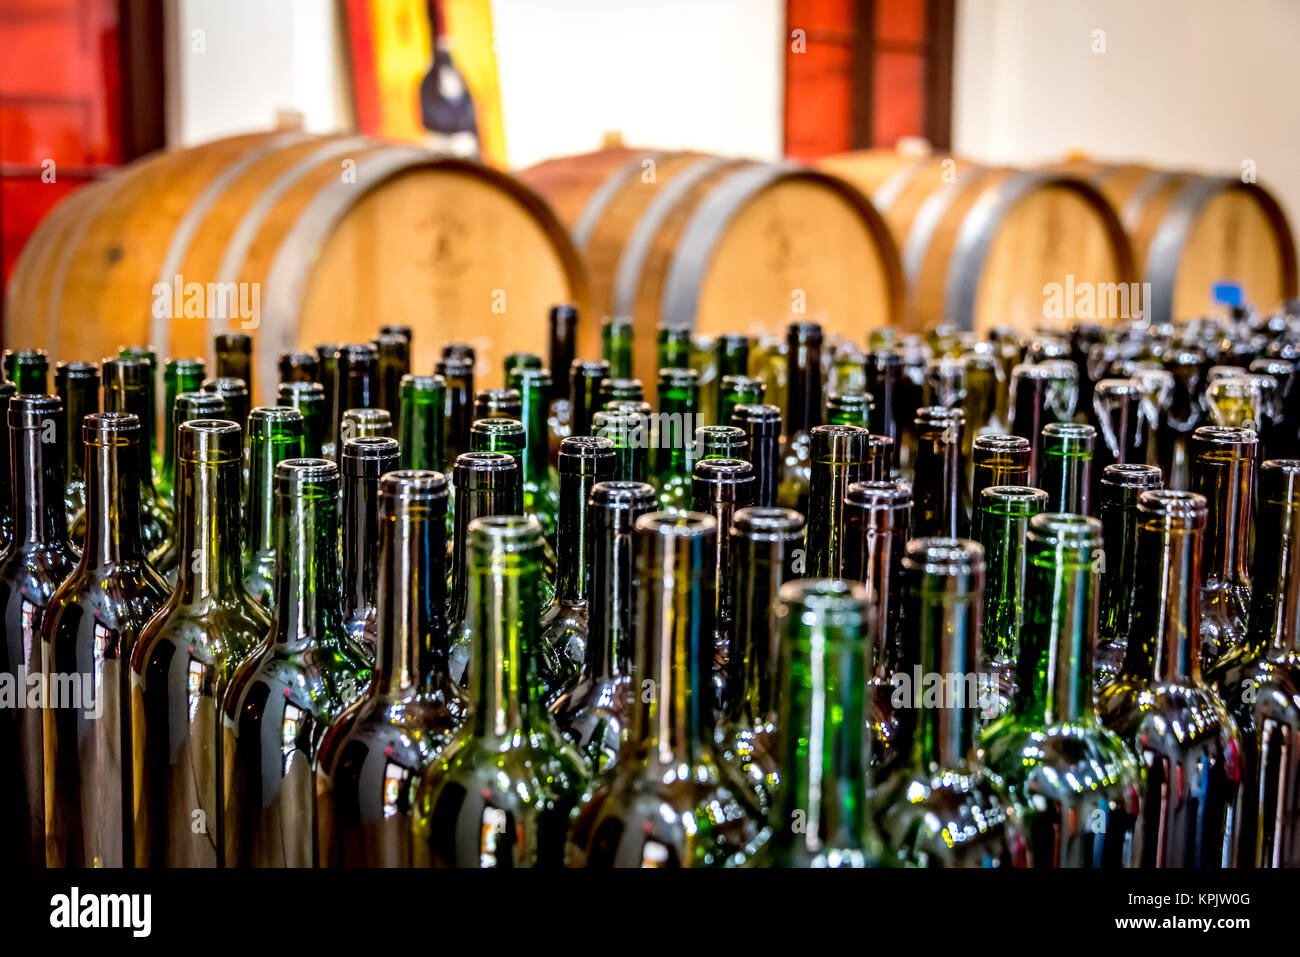 Rows of green wine bottles in front of wine barrels at Bahama Barrels winery in Nassau, Bahamas. - Stock Image